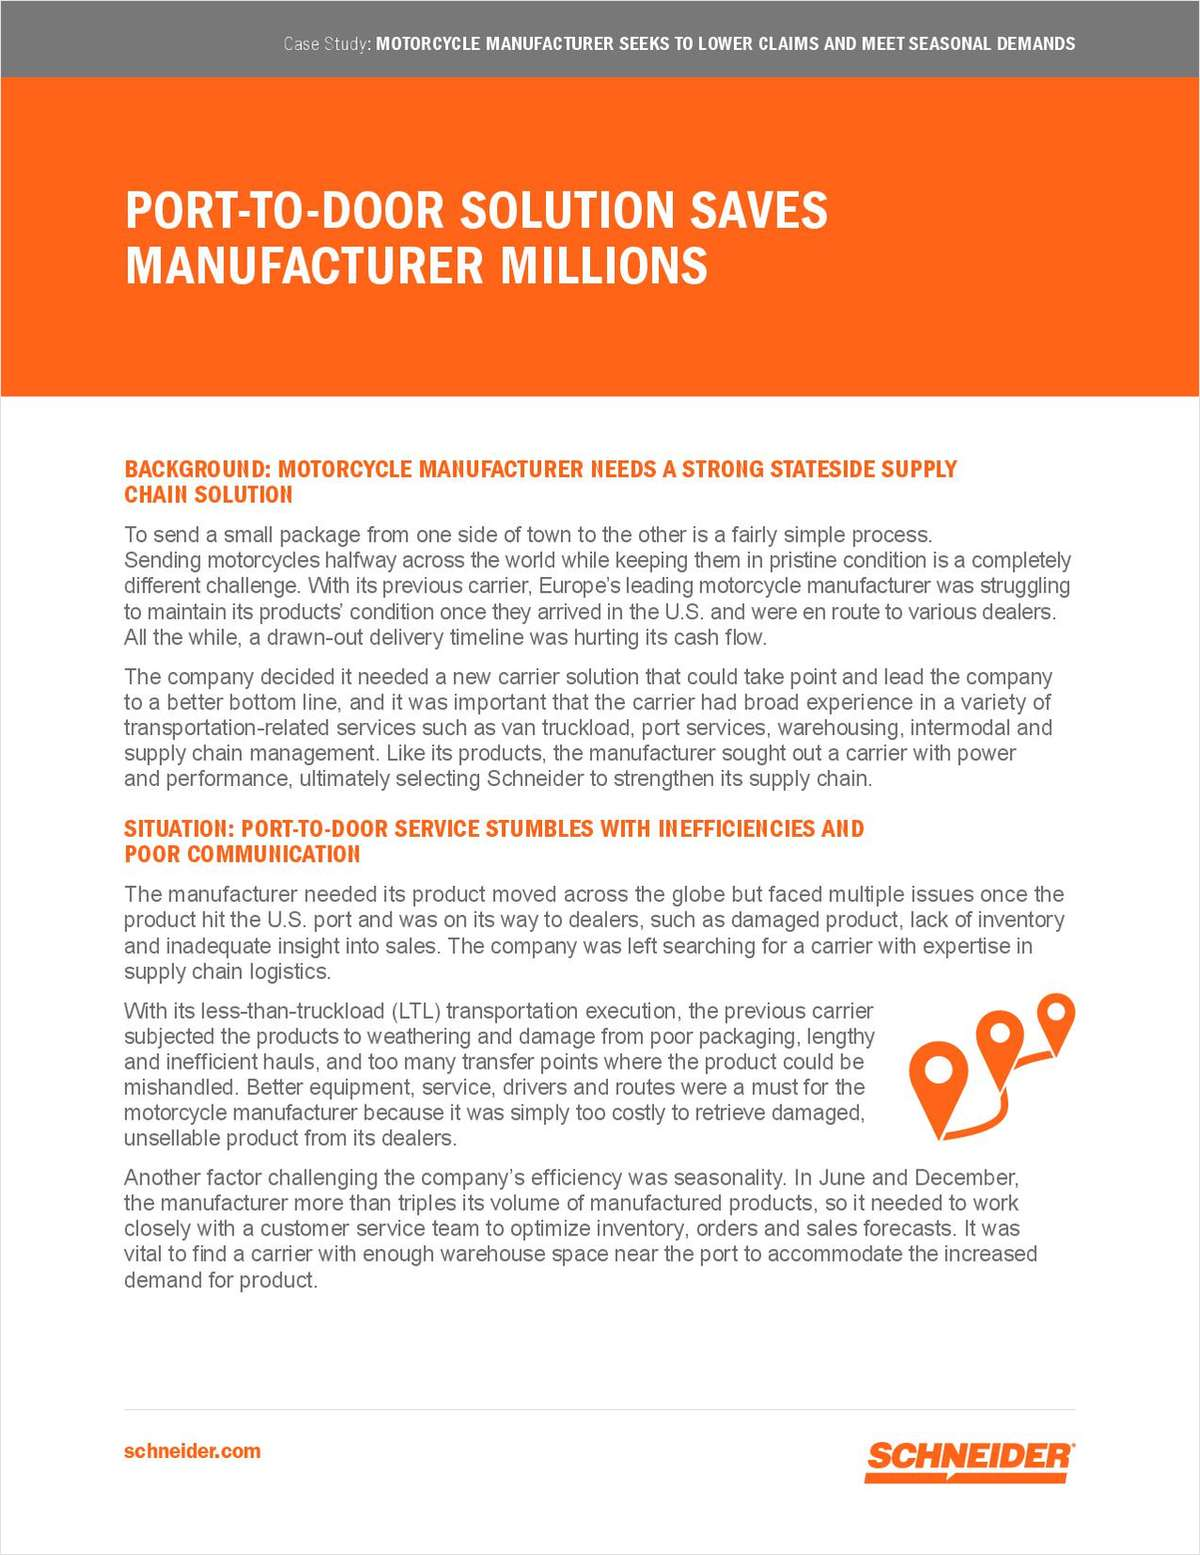 How to Save Millions in Your Supply Chain with a Port-to-Door Solution